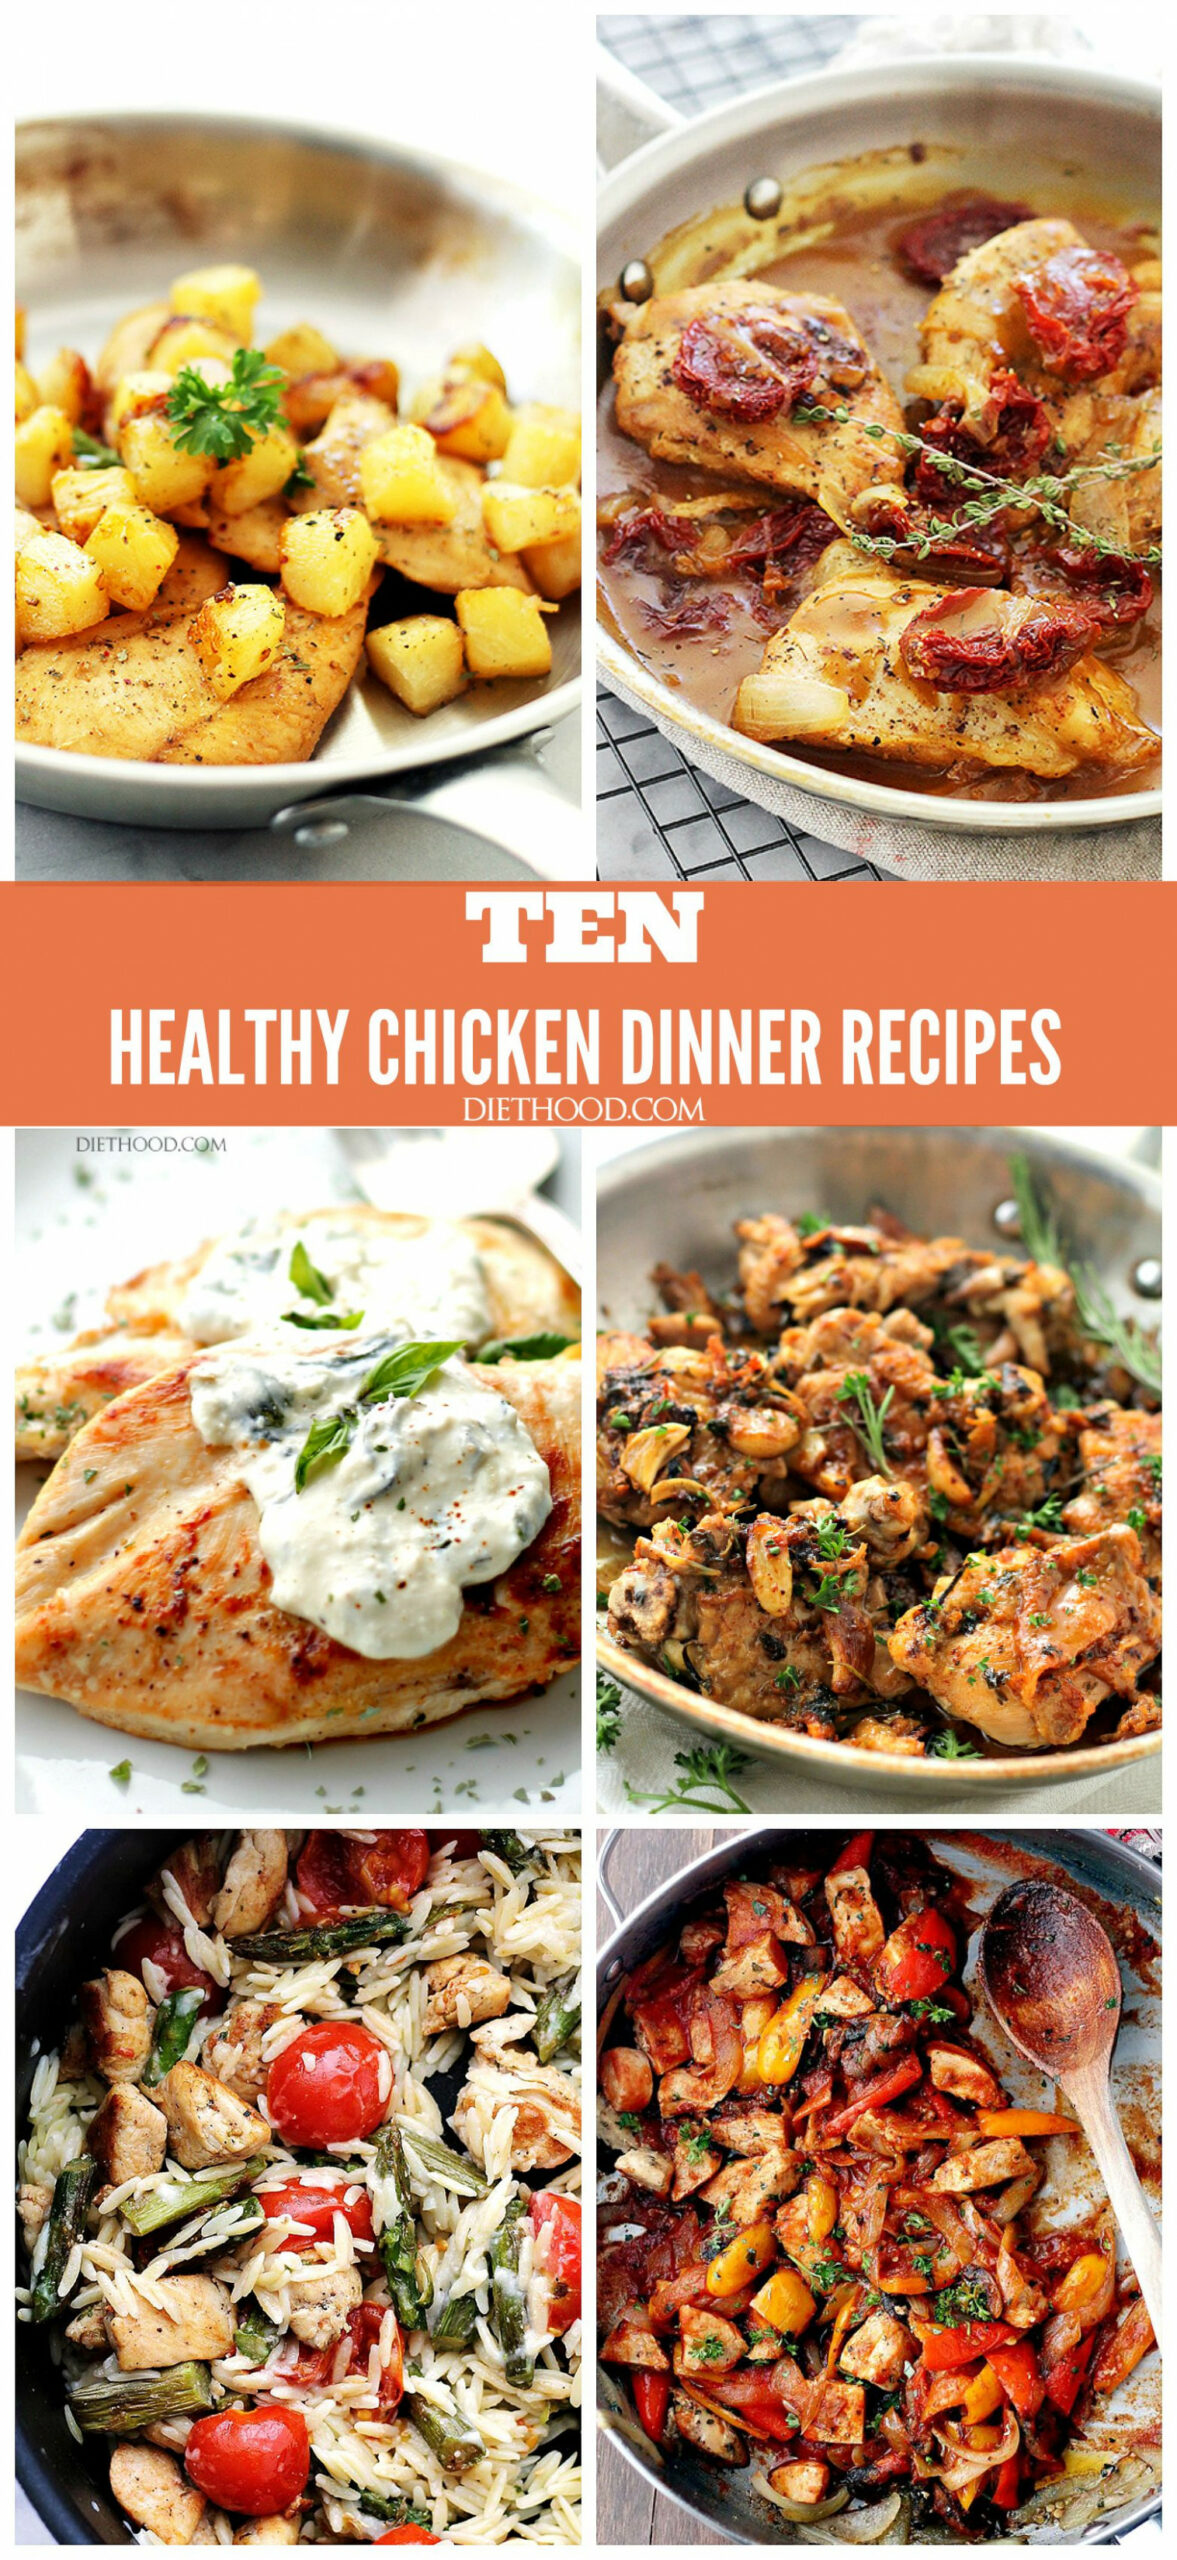 TEN HEALTHY CHICKEN DINNER RECIPES - A Compilation Of My ..